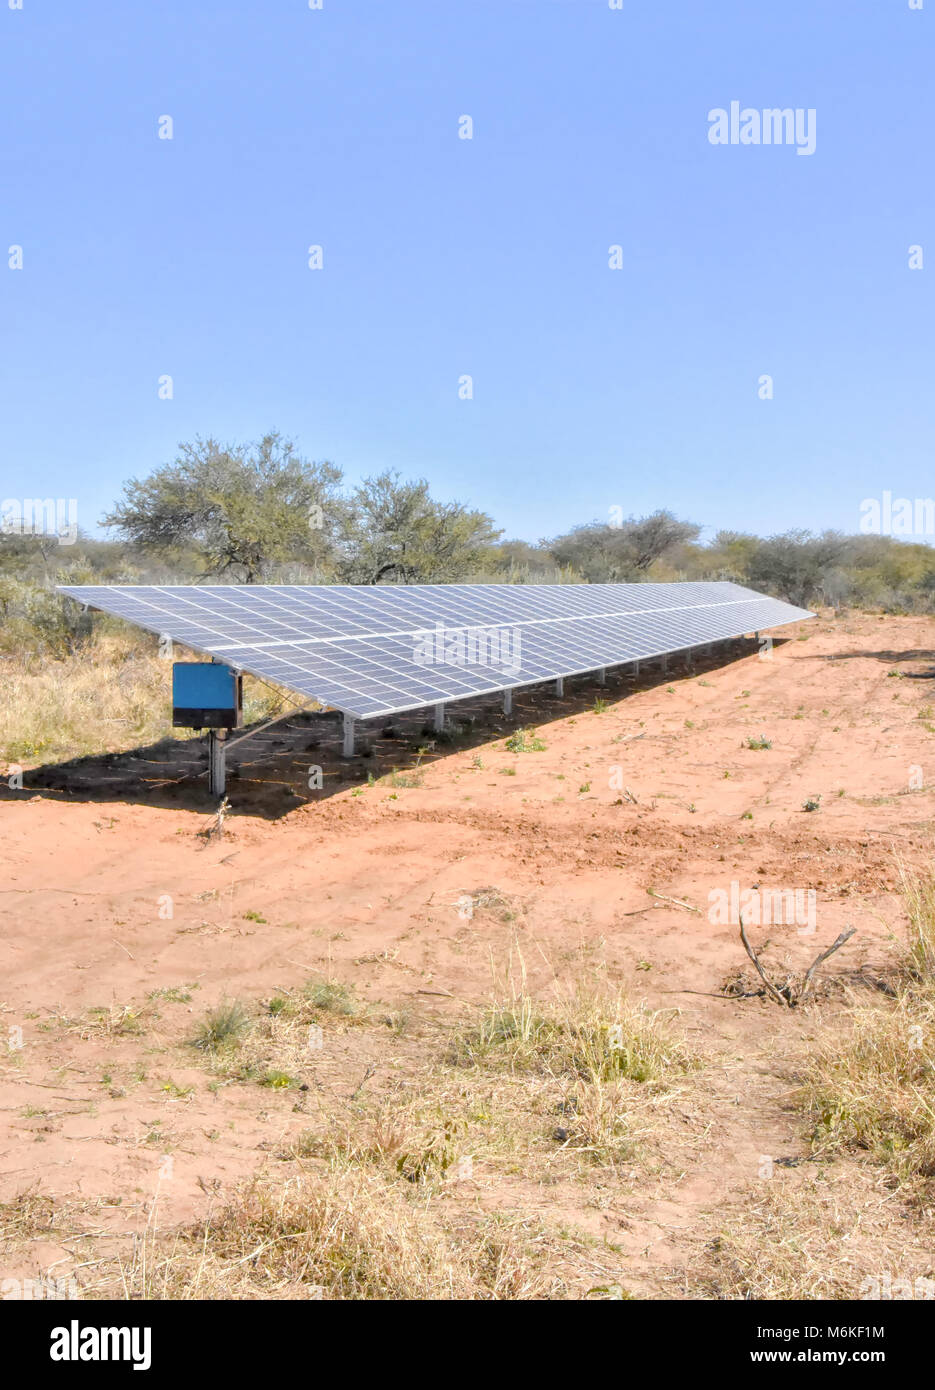 A large array of solar panels in Namibia placed in a wildlife refuge to power fences and accommodation - Stock Image